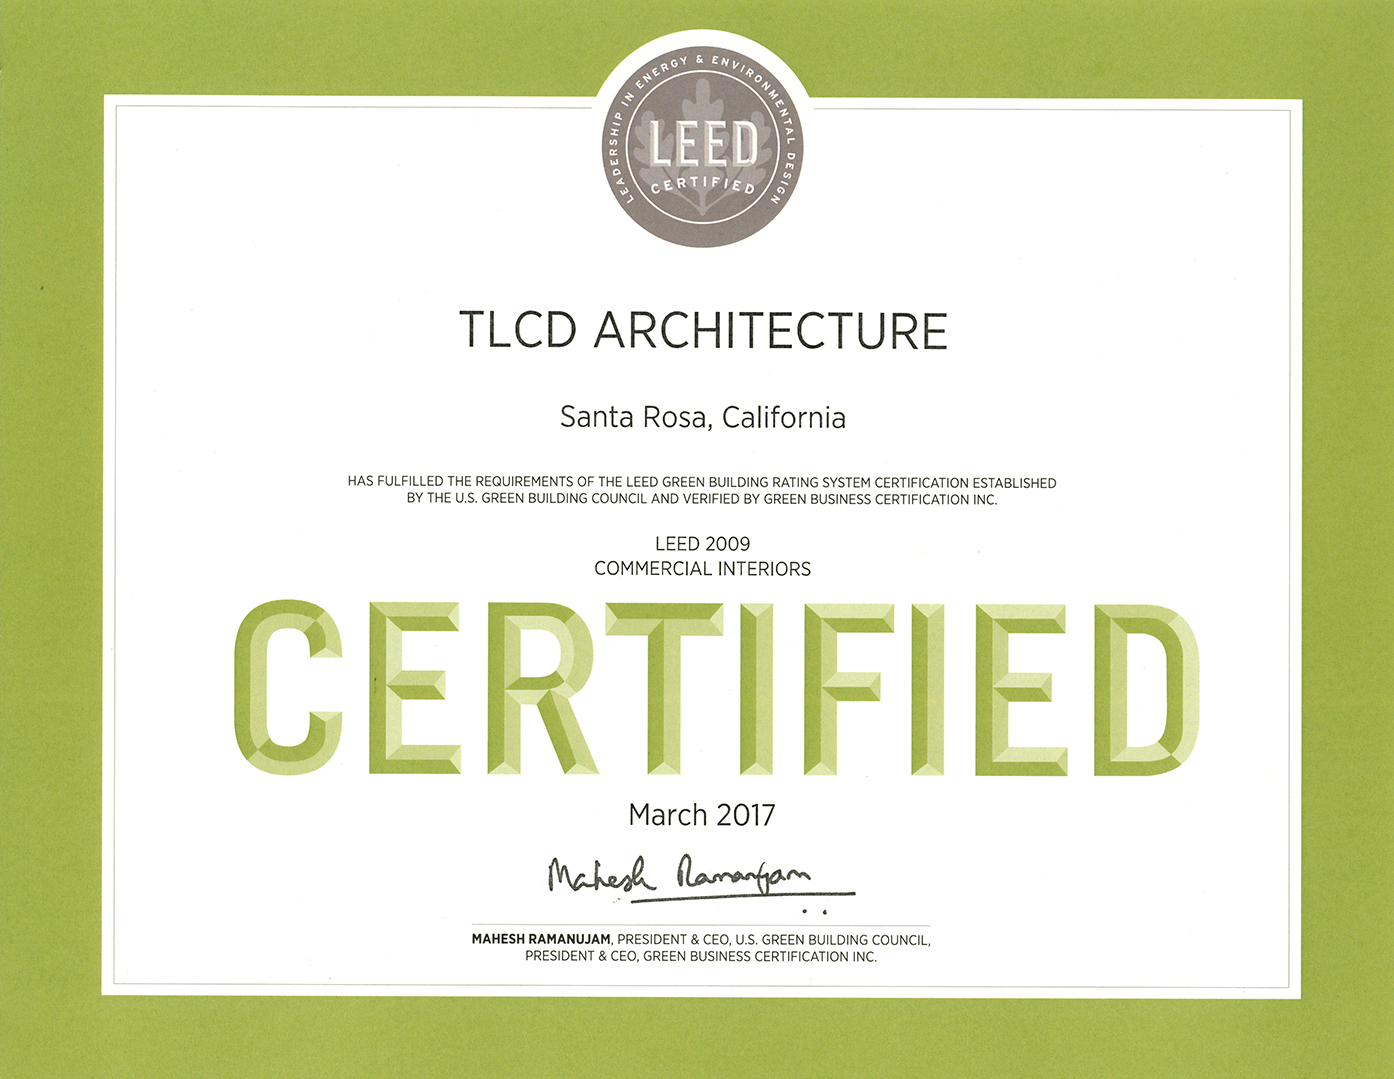 tlcd architecture s office attains leed certification tlcd today